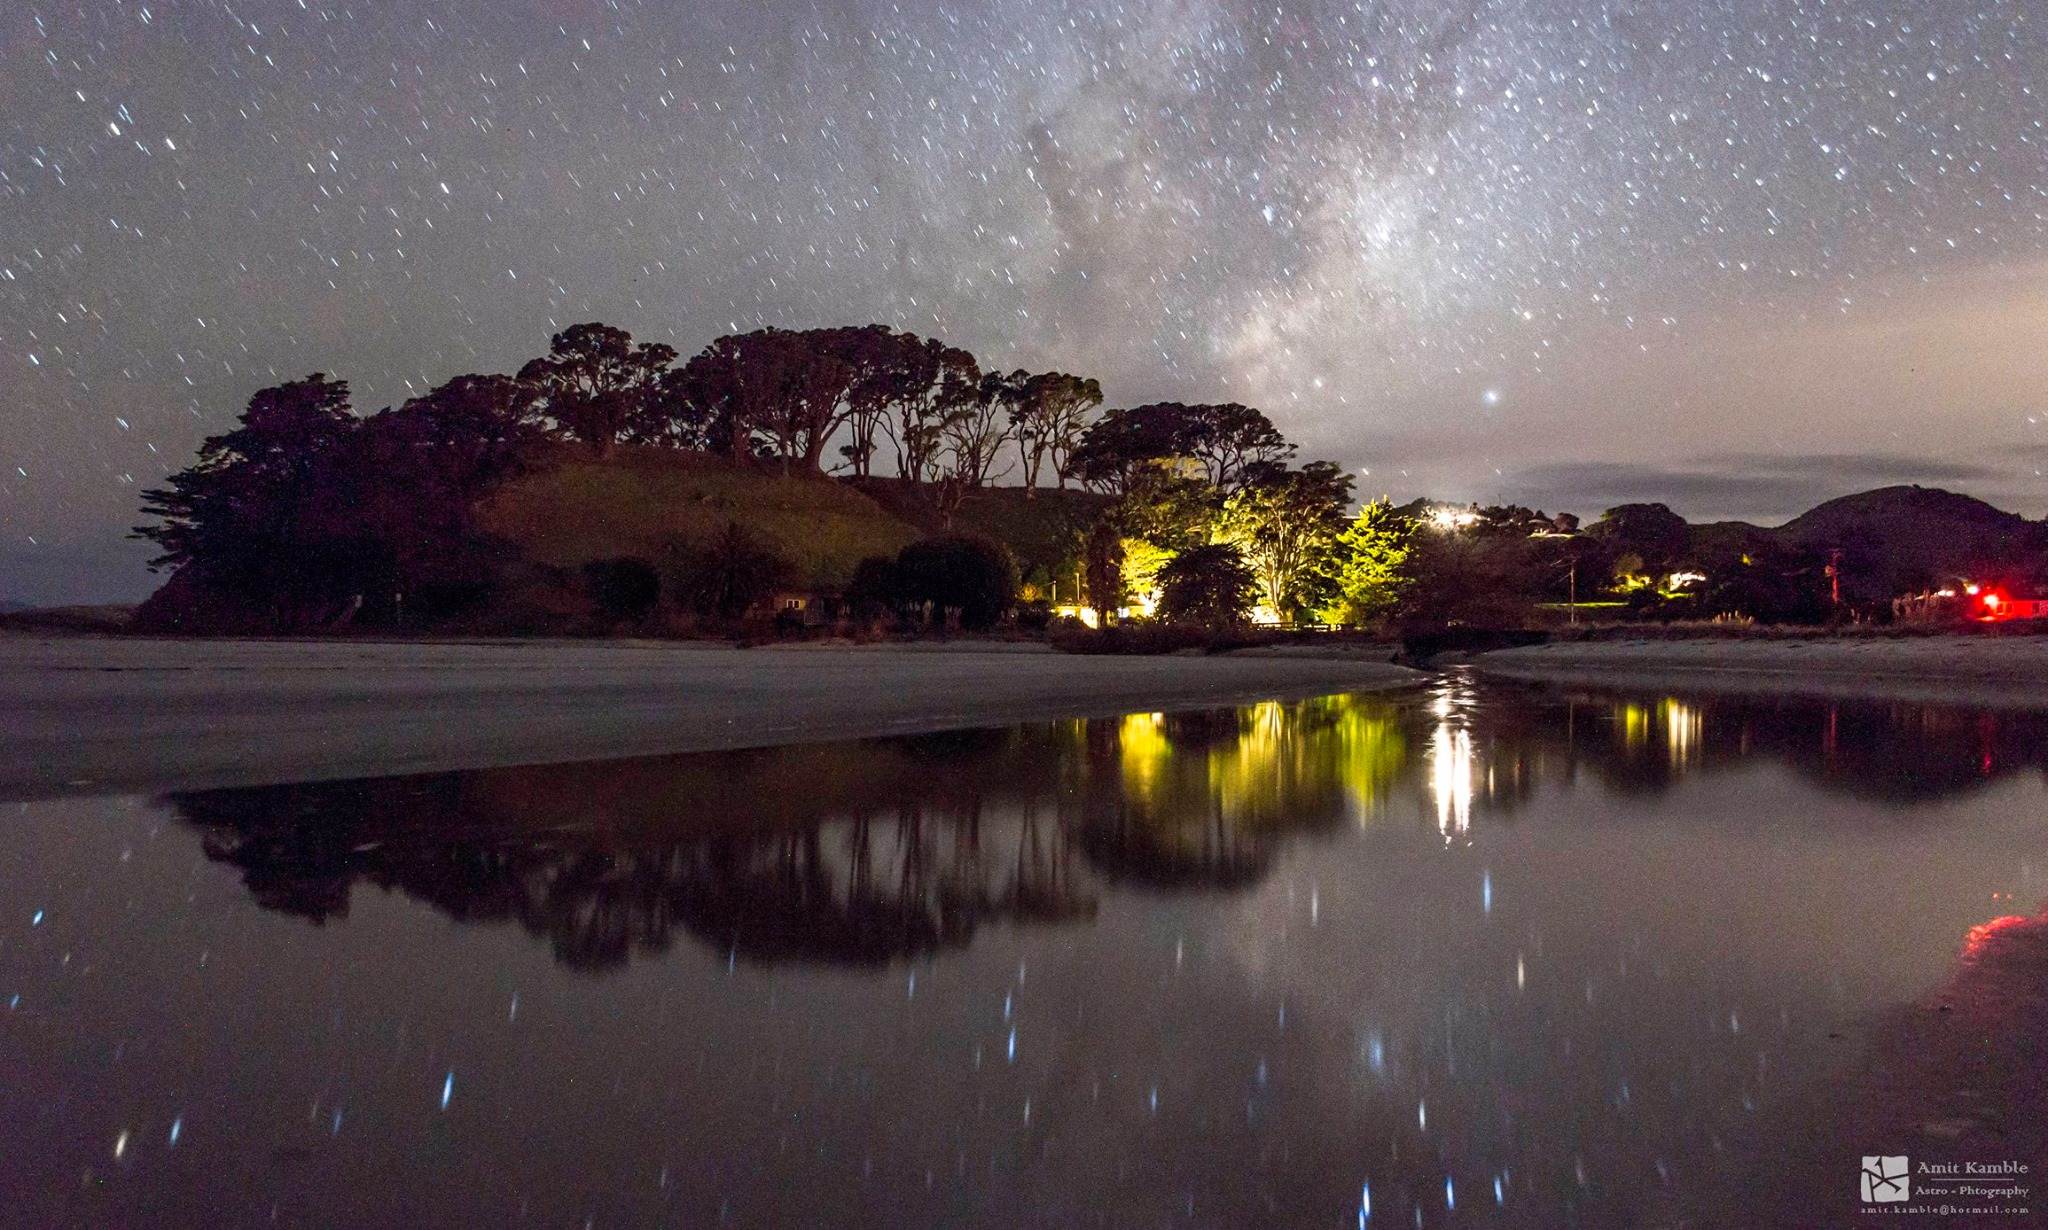 Milky Way Galaxy Shimmers Over New Zealand Pool in Stunning Amateur Photo